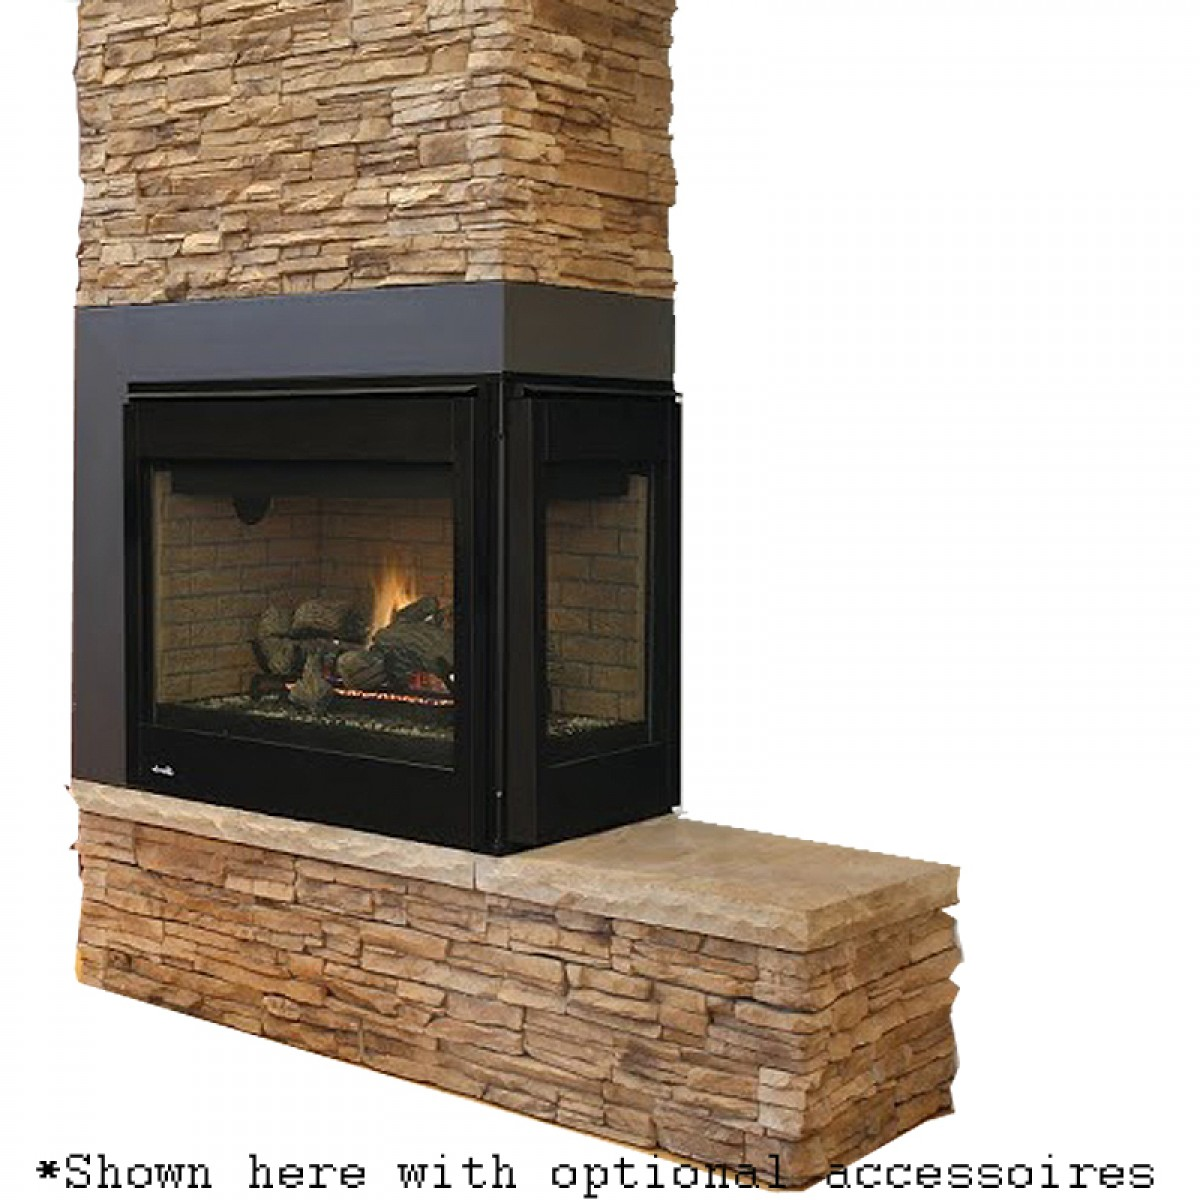 Ihp Superior Drt4000 Multi View Direct Vent Gas Fireplace